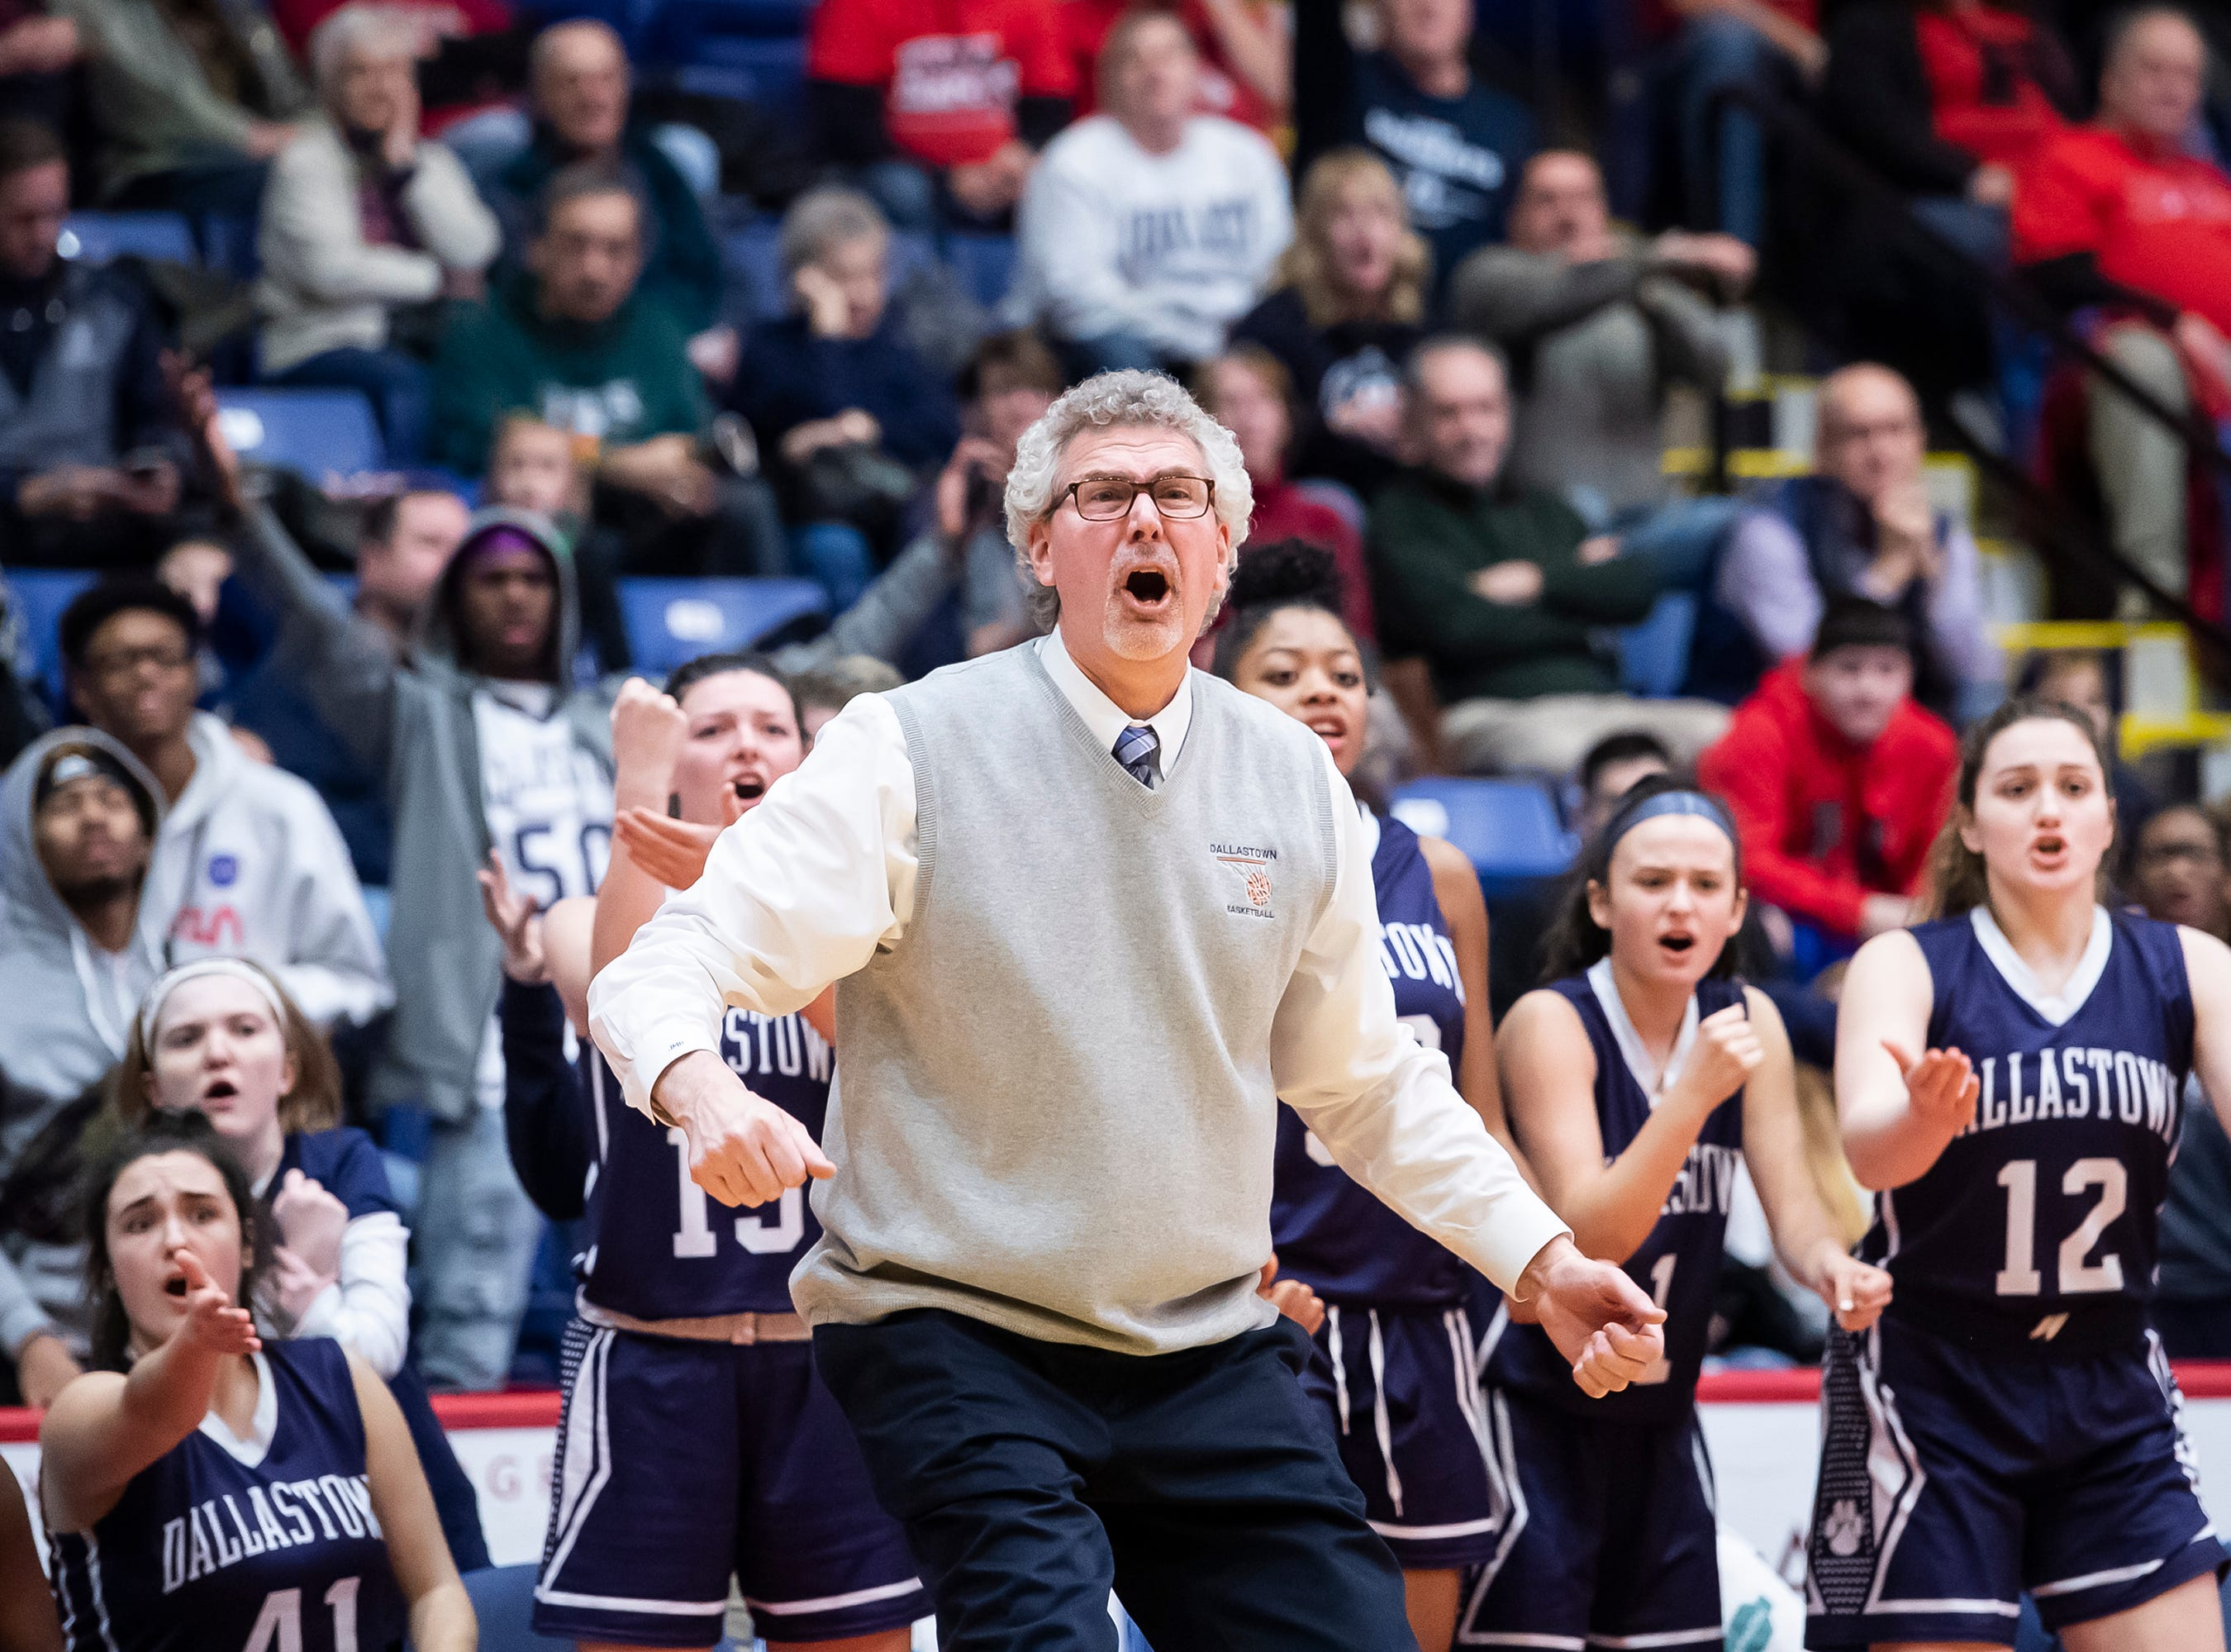 Dallastown head coach Jay Rexroth reacts after a call against the Wildcats during the District 3 6A girls championship game against Cumberland Valley at the Santander Arena in Reading, Pa., Friday, March 1, 2019. Dallastown fell 33-27.